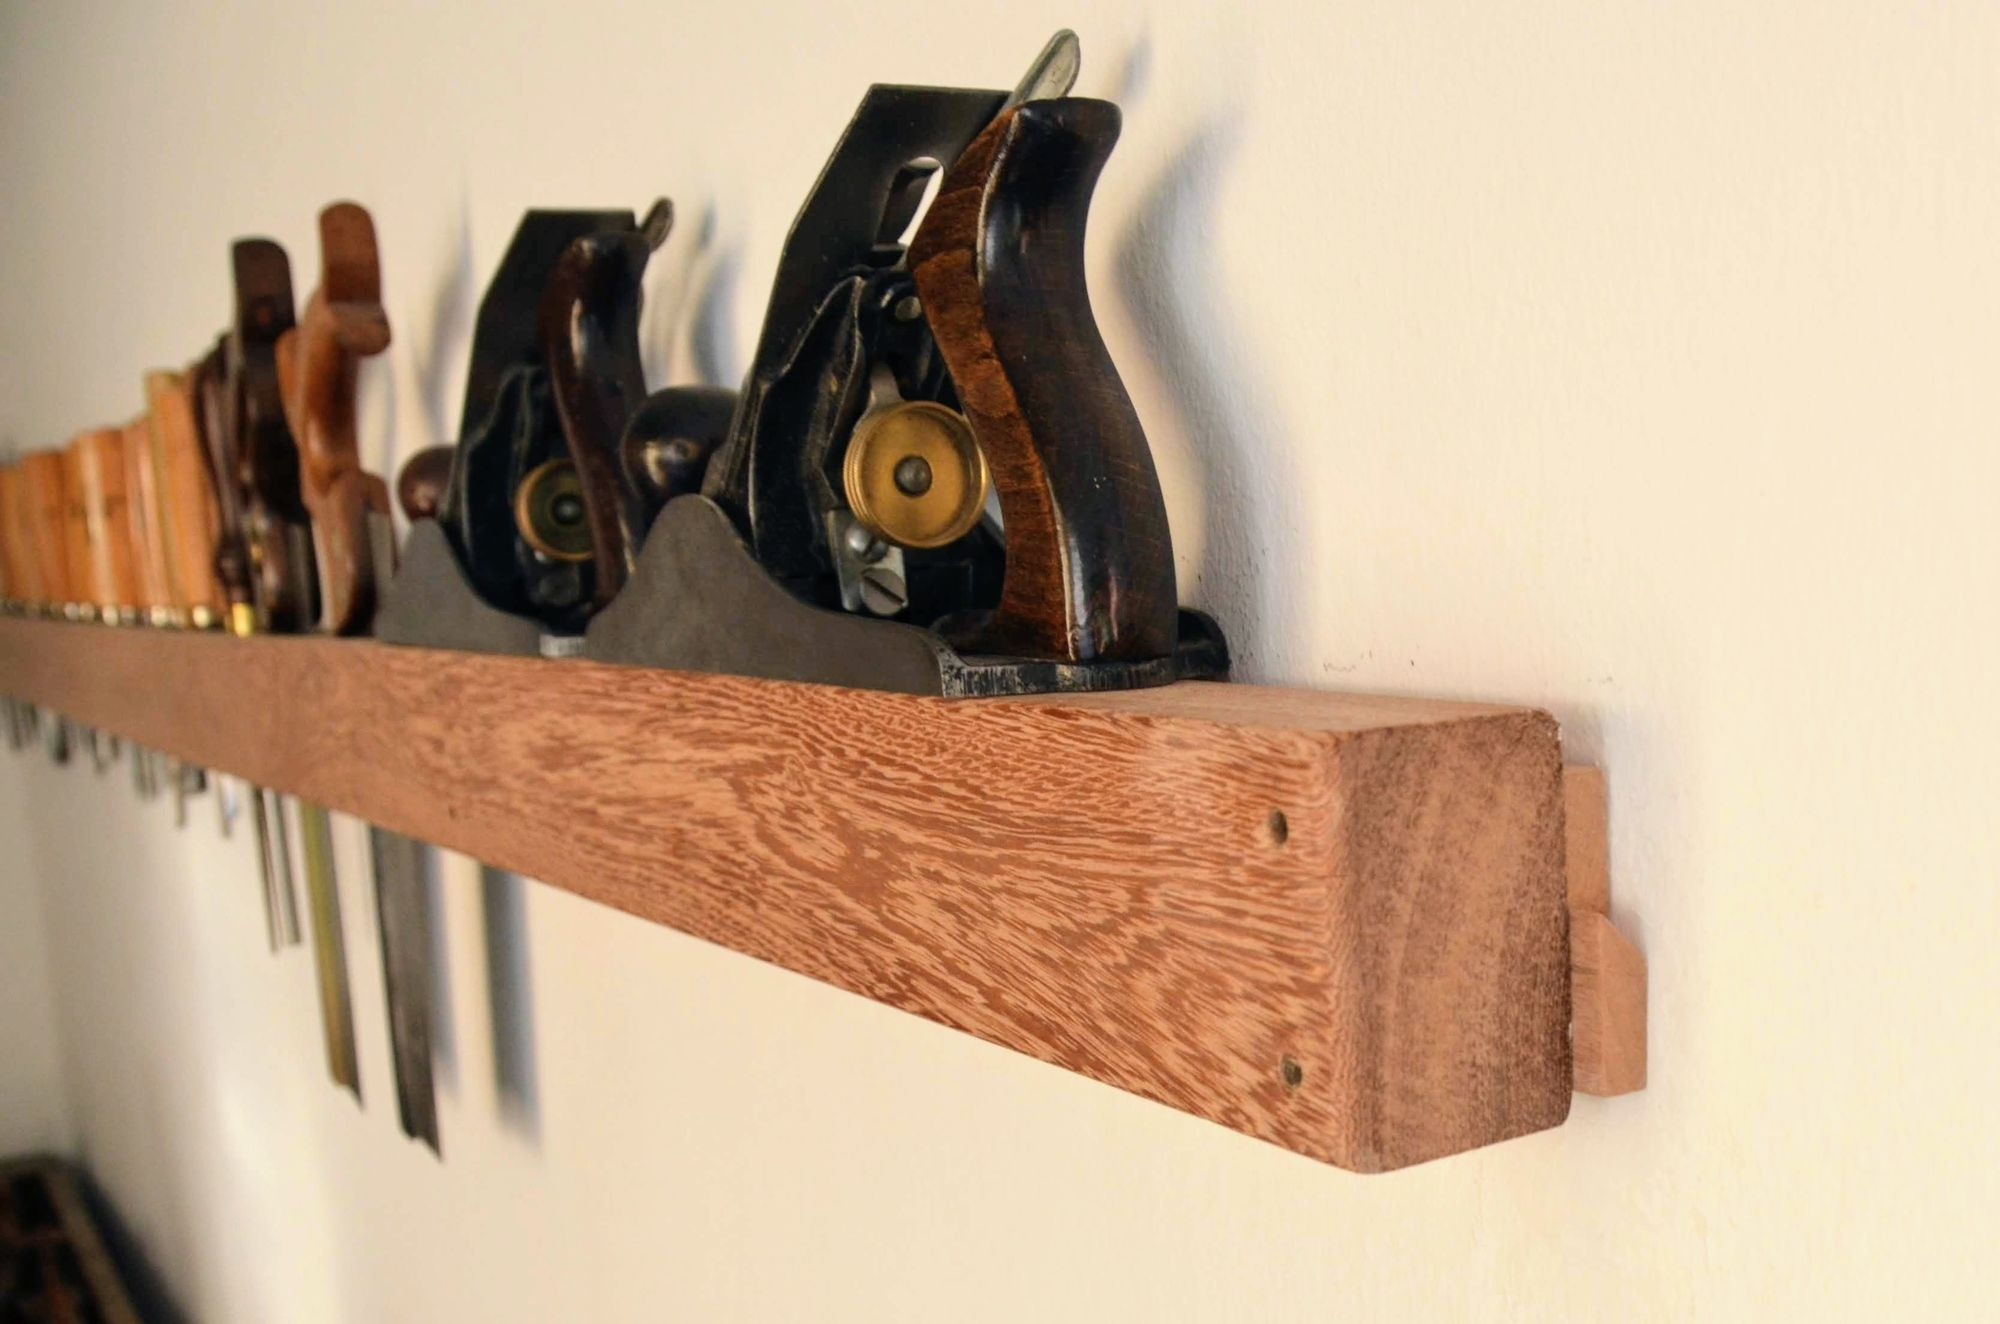 Hand tool rack with French cleat